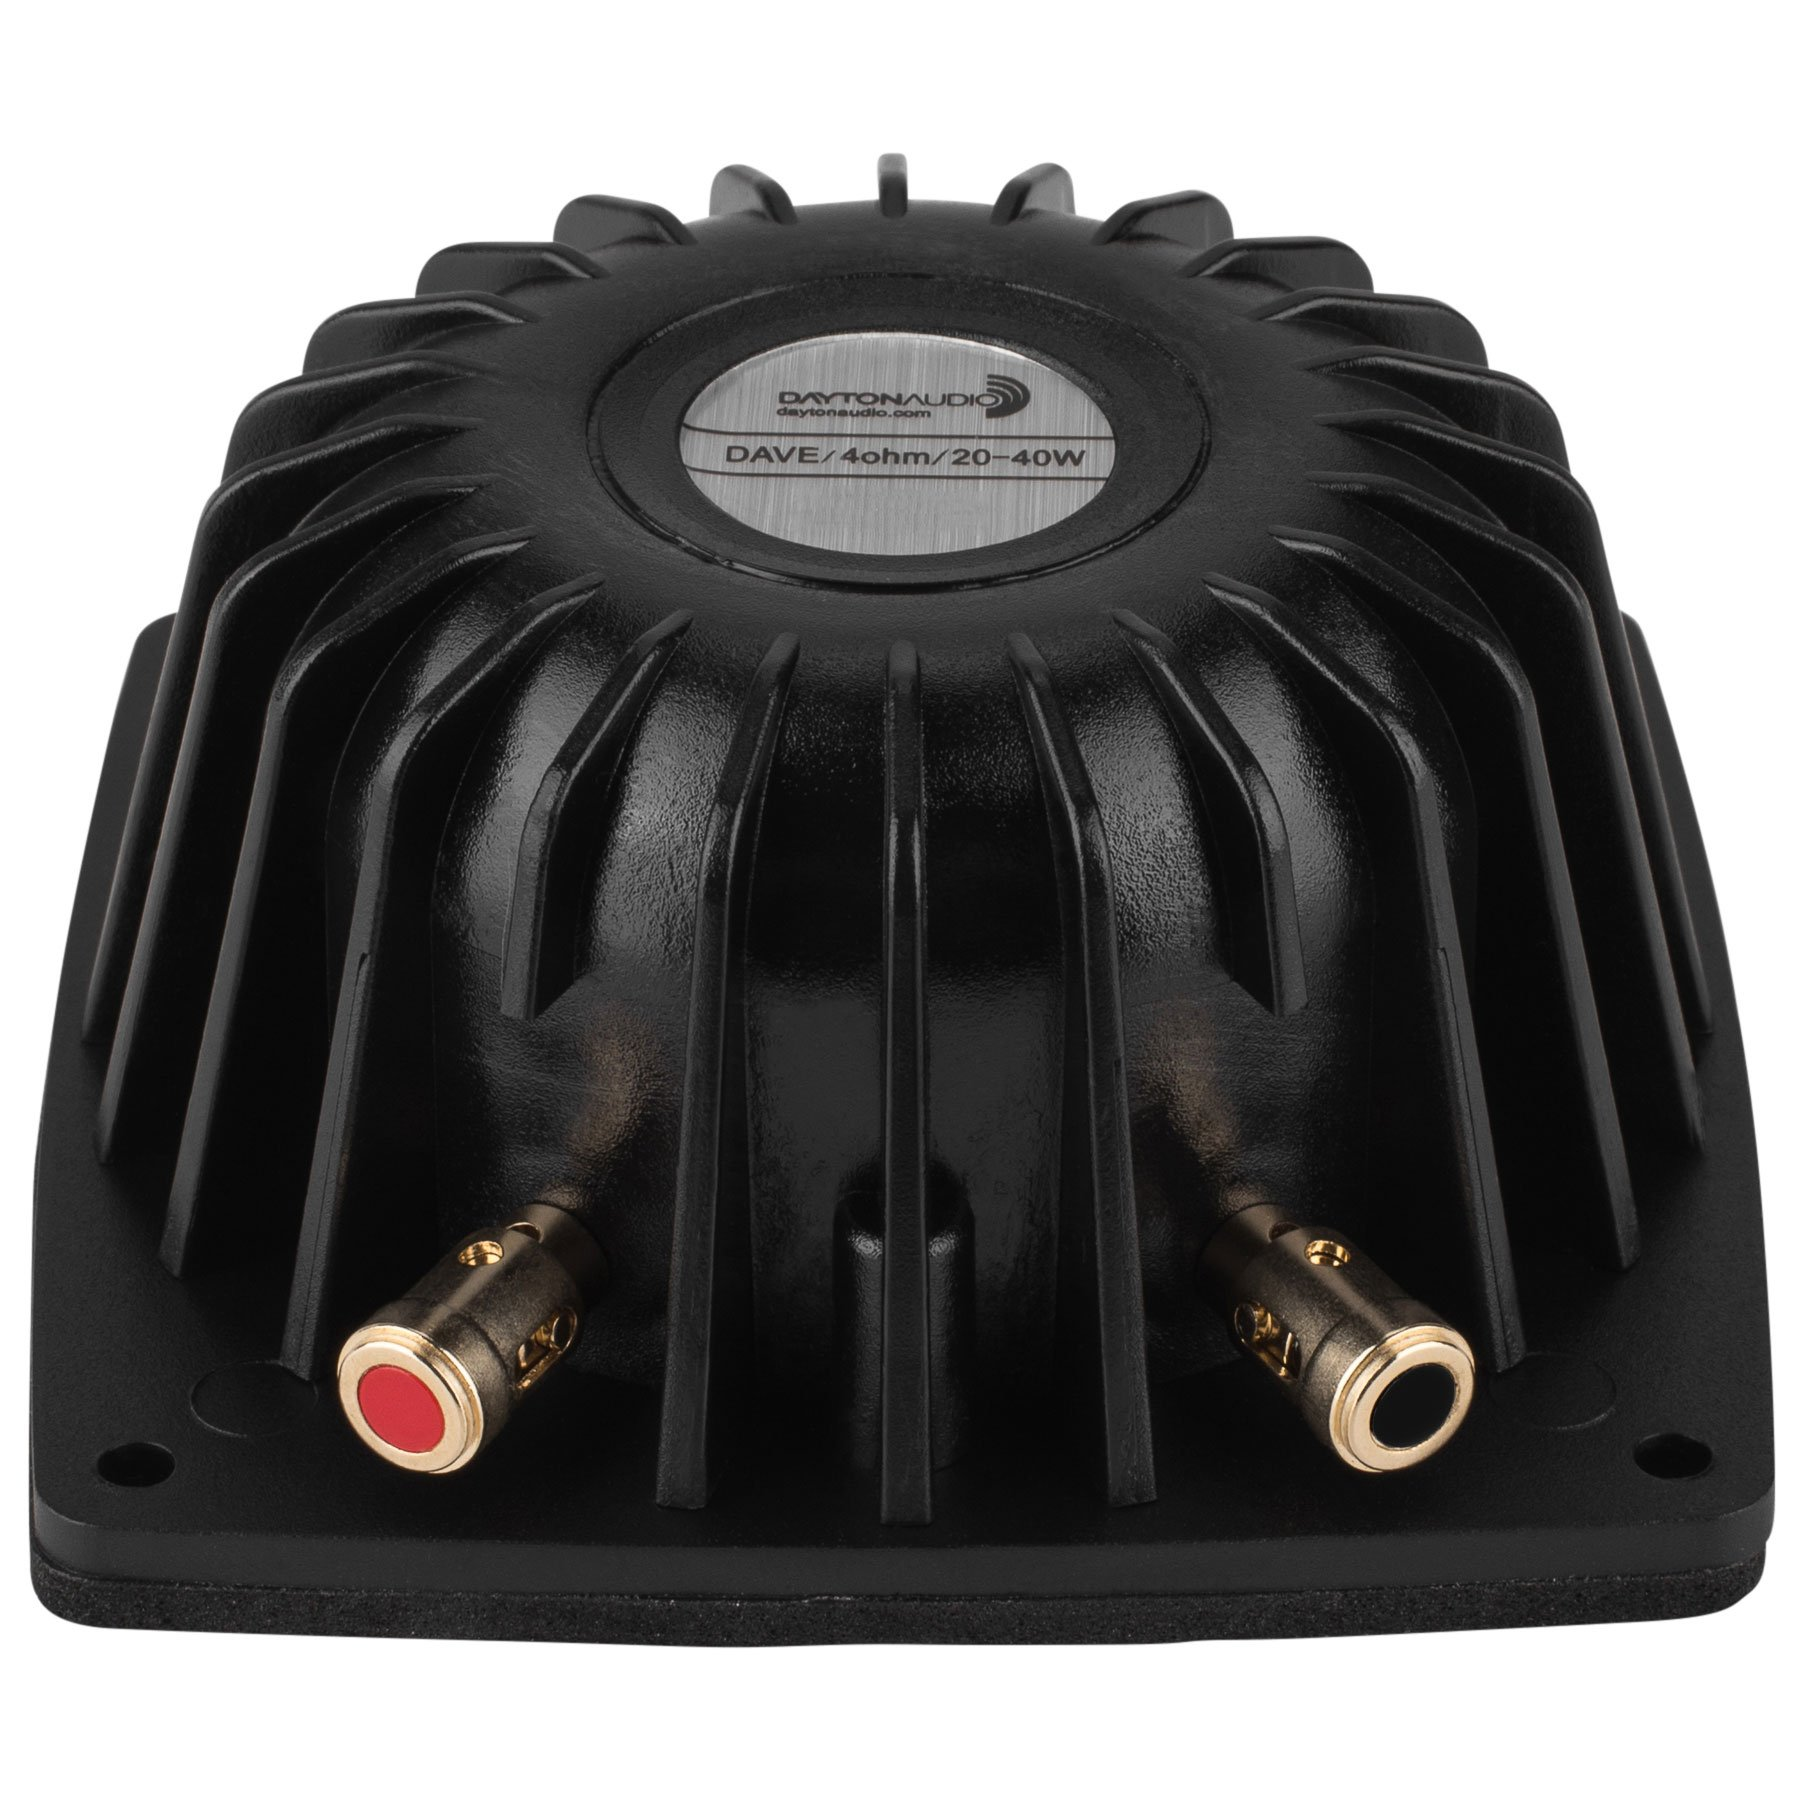 Dayton Audio DAVE Vibration Exciter Tactile Bass Shaker Transducer 20W 4 Ohm by Dayton Audio